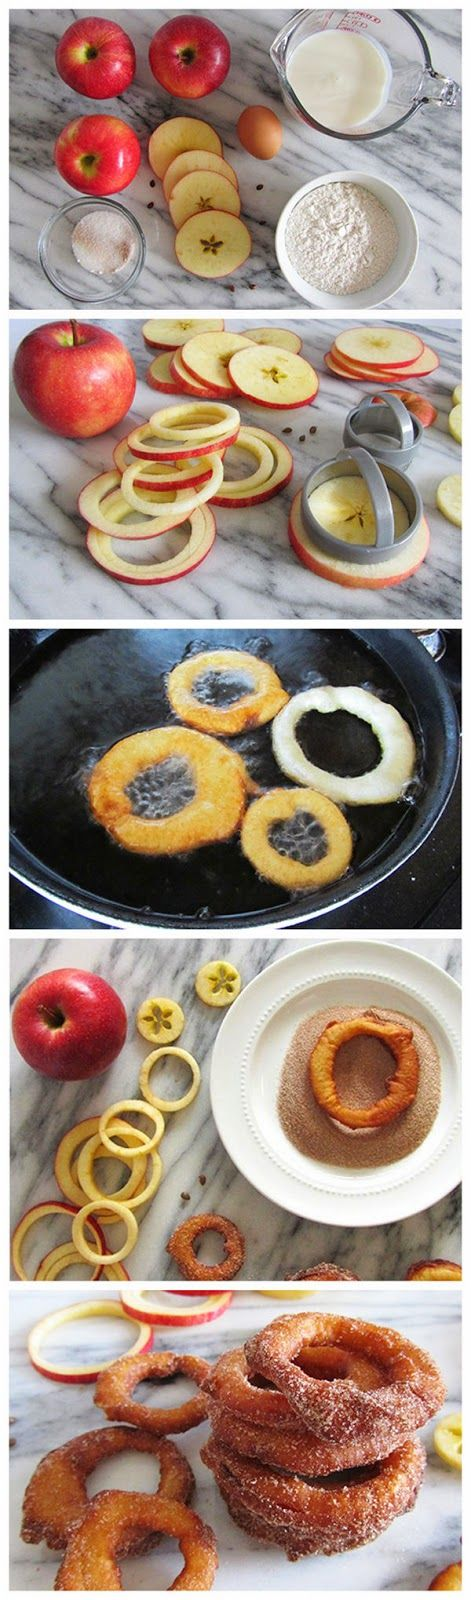 Fried Cinnamon Apple Rings - yummmmm